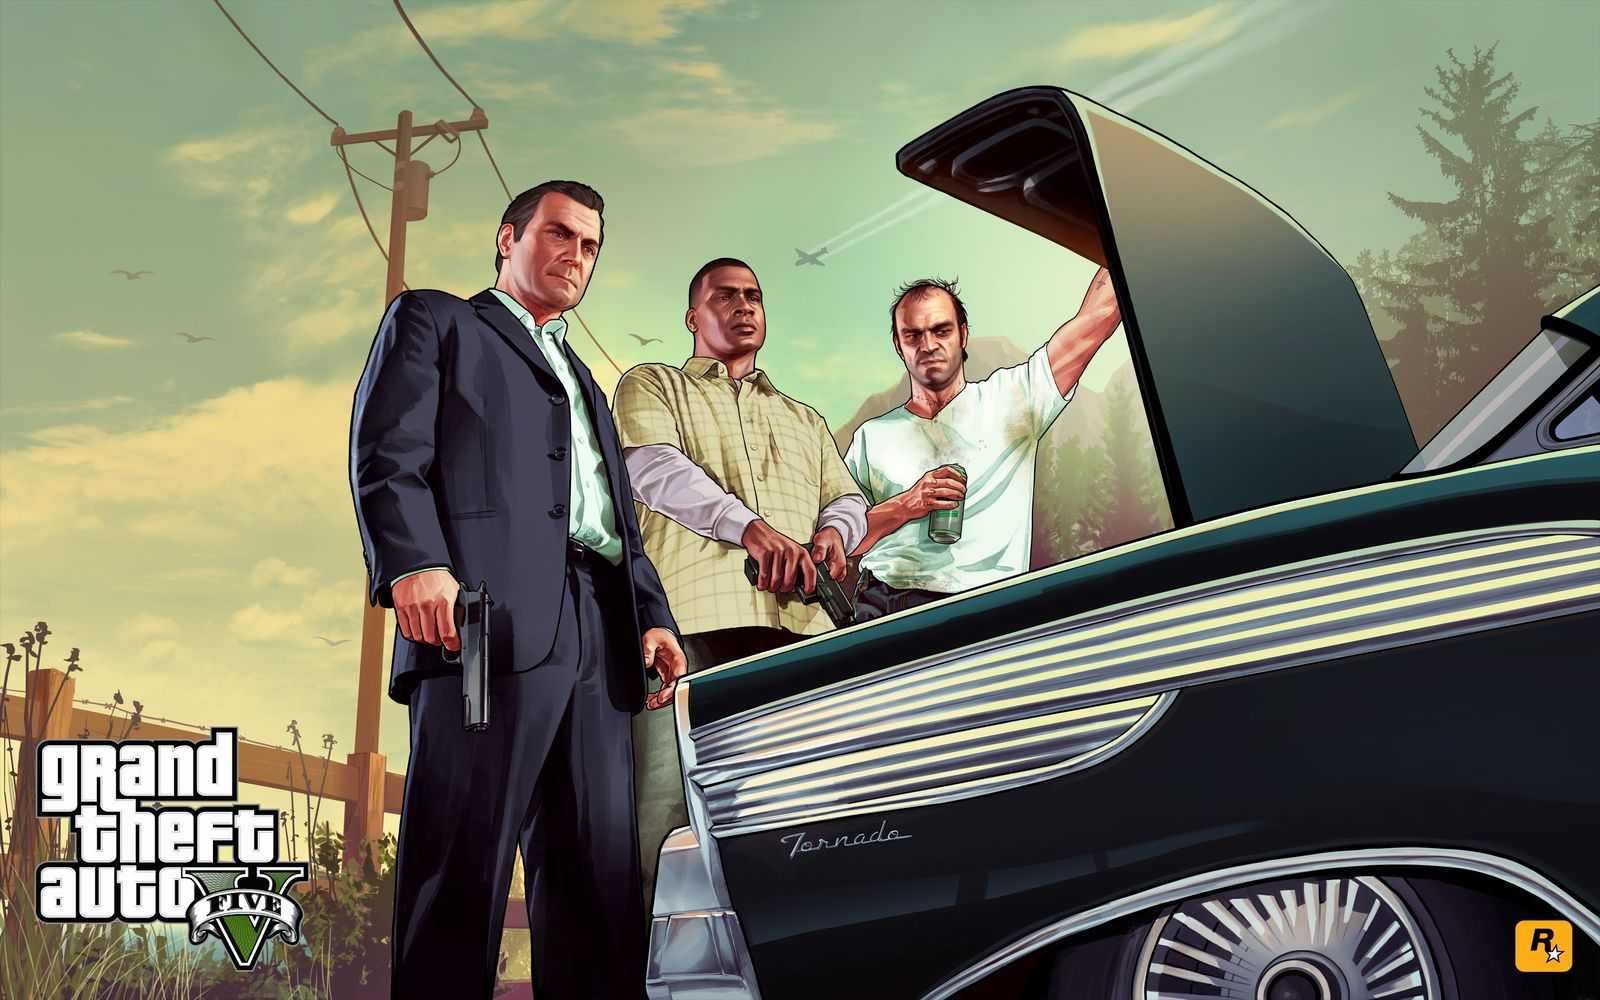 GTA 5 best team wallpapers